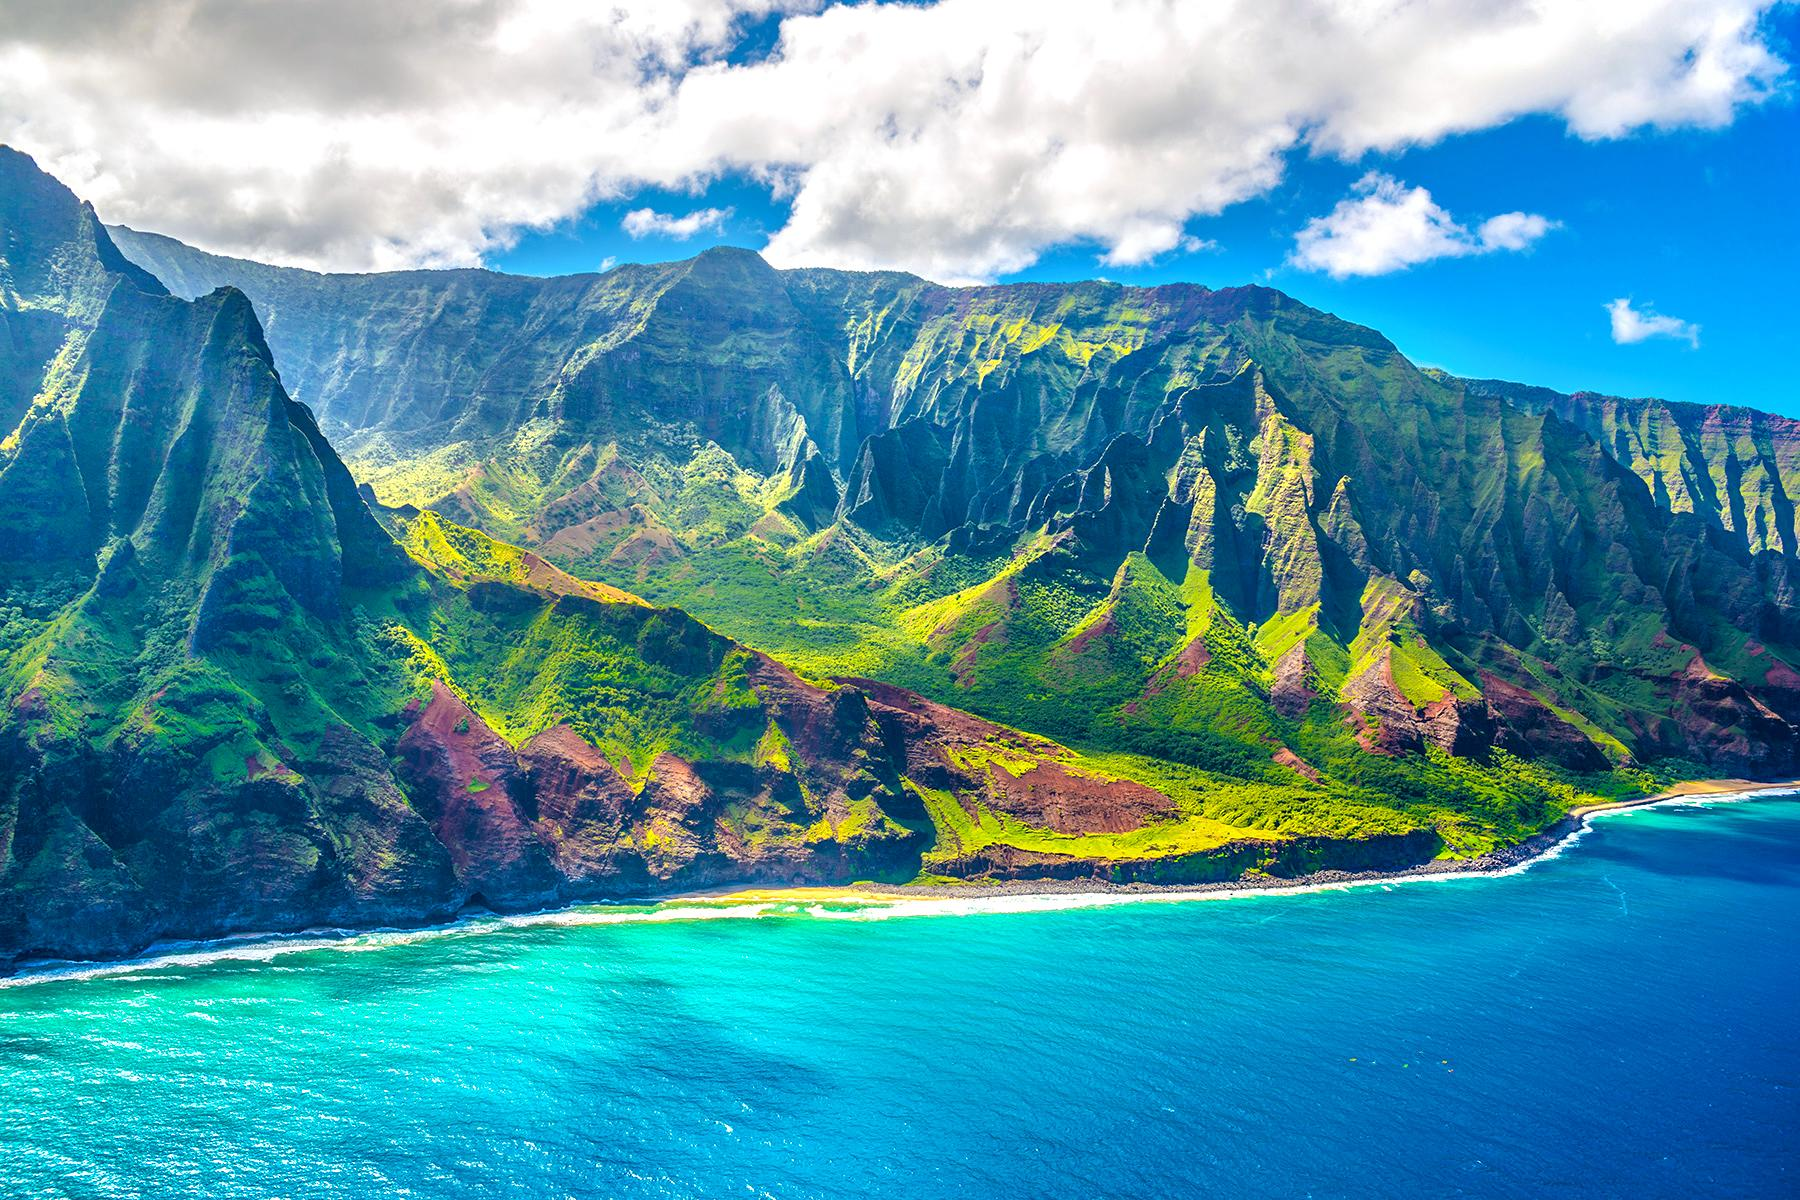 CBD Oil in Hawaii: Current Laws Made Simple